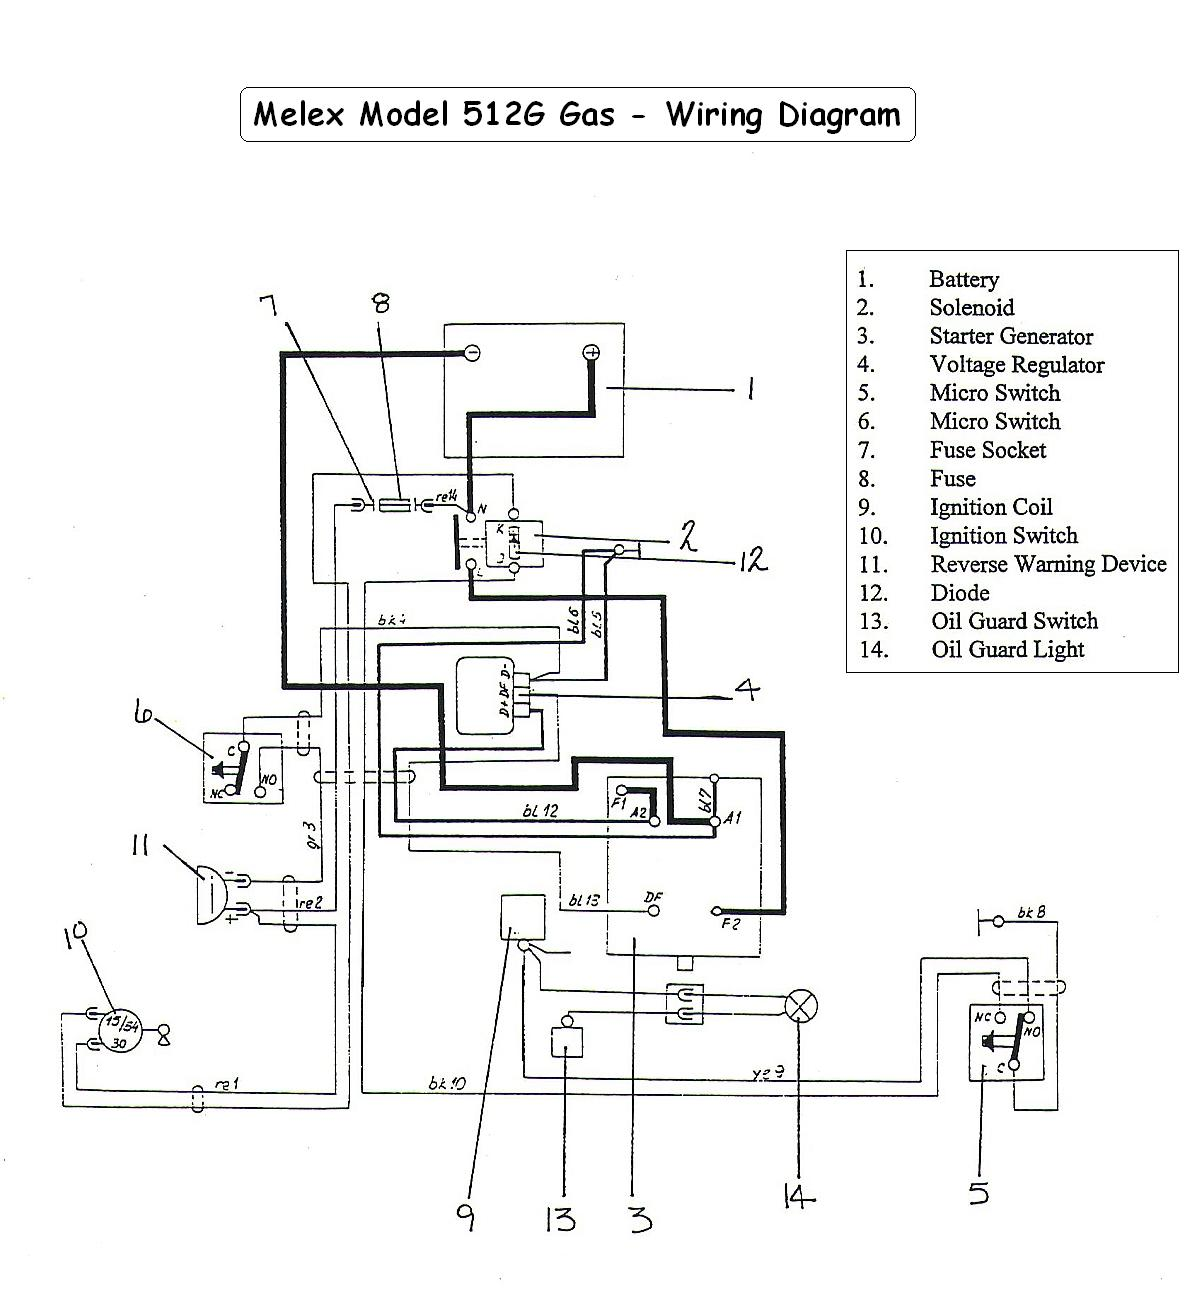 Melex512G_wiring_diagram vintagegolfcartparts com club car ignition switch wiring diagram at readyjetset.co